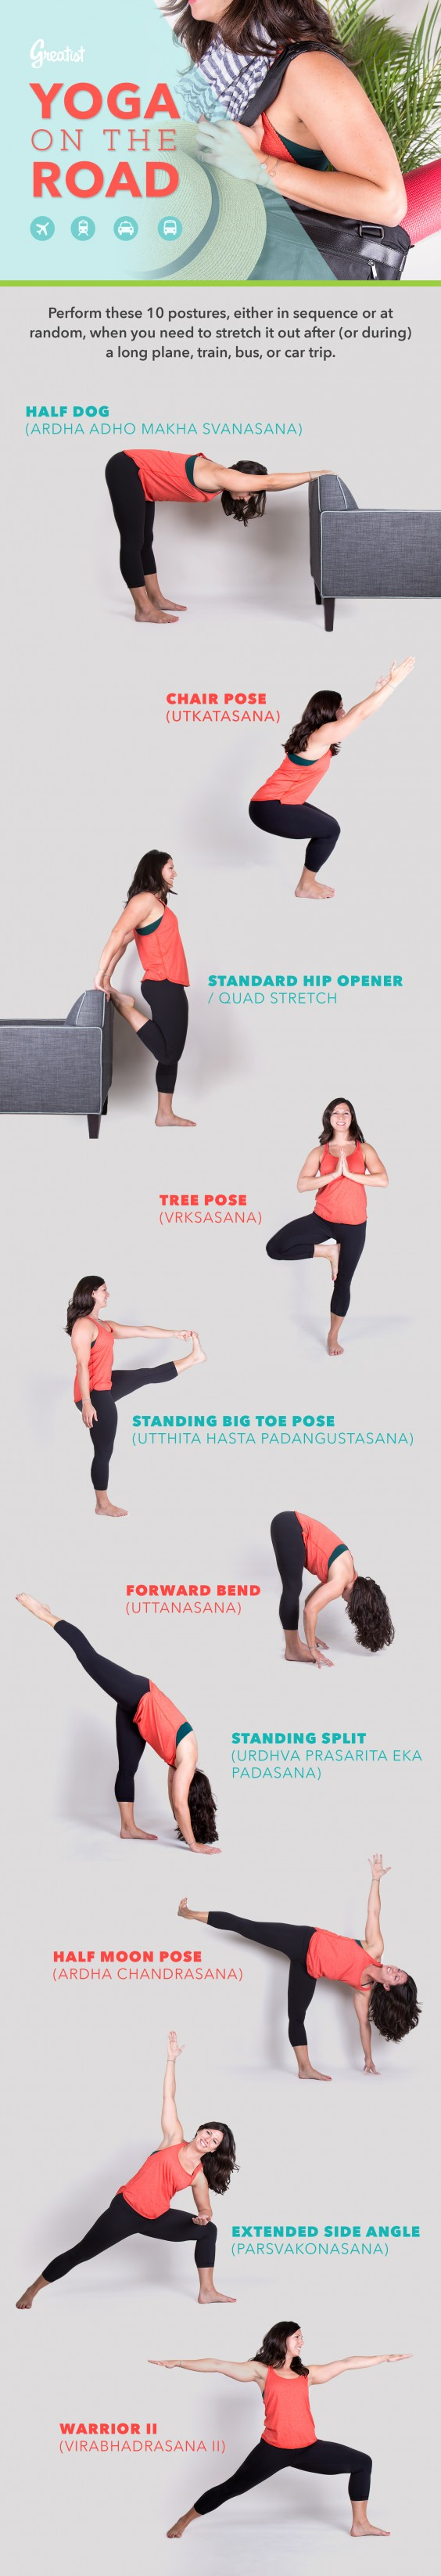 Yoga Poses: The 46 Best Moves to Stay Fit While Traveling